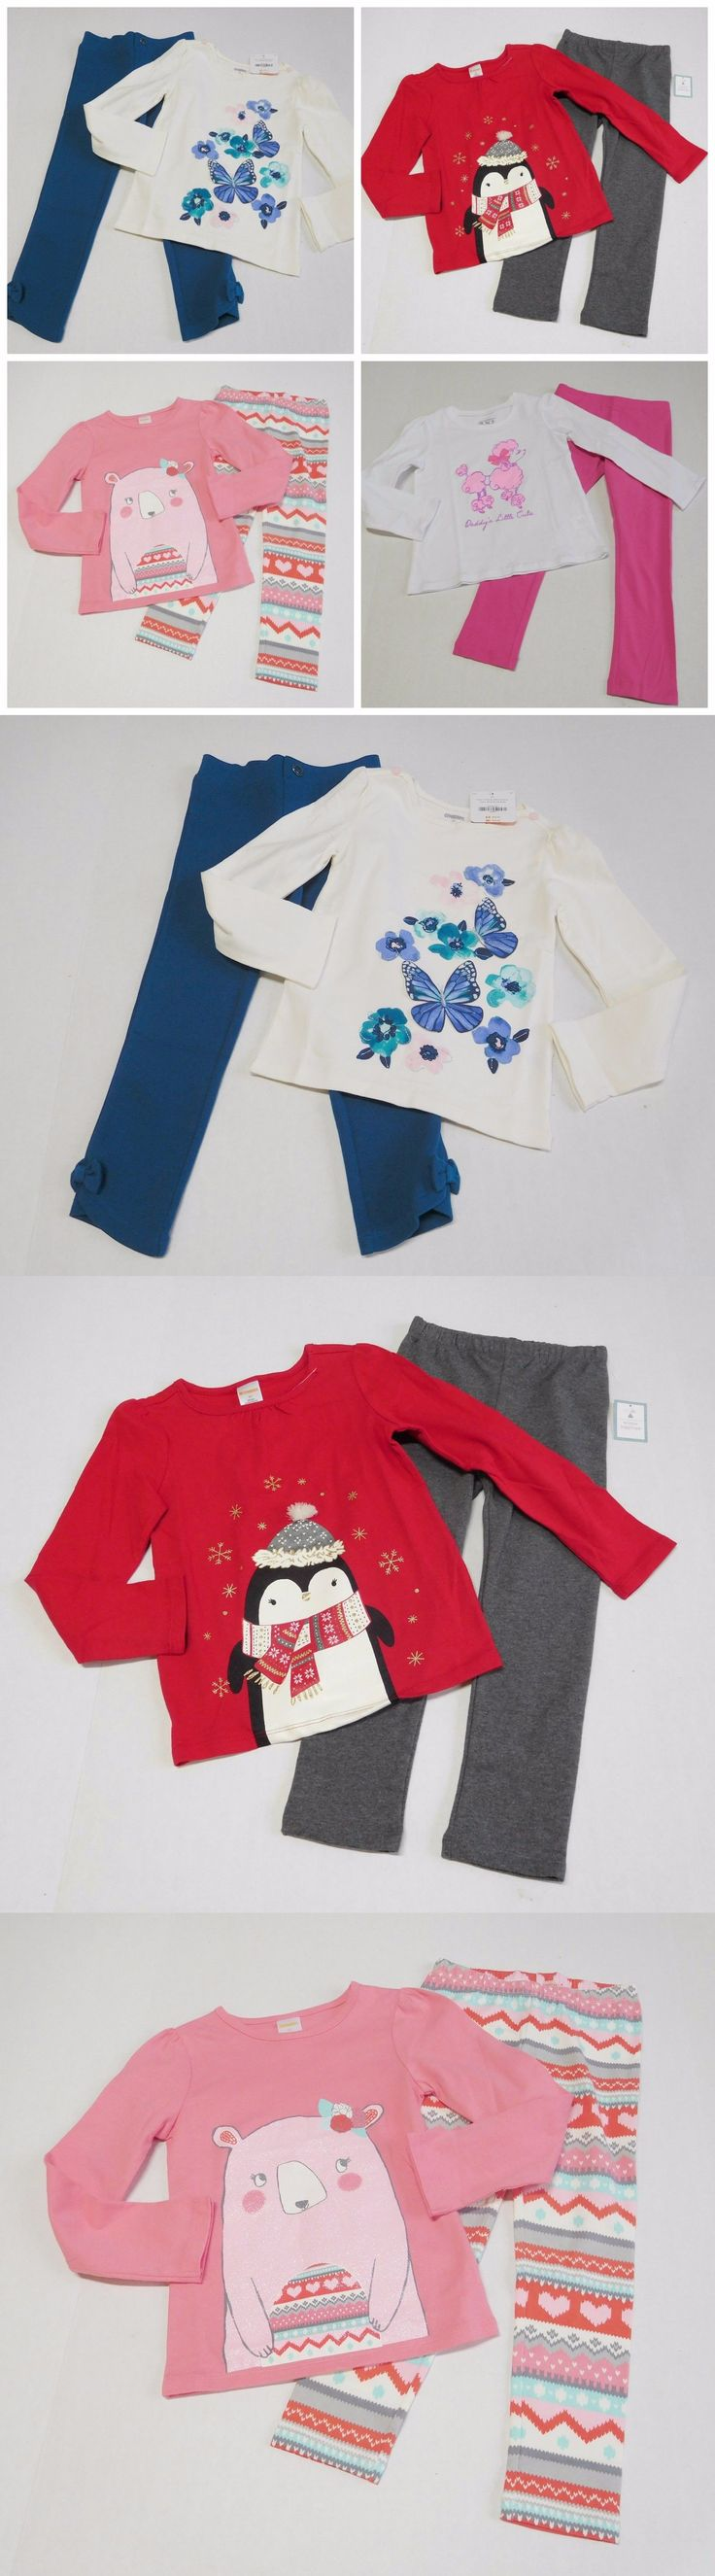 Mixed Items and Lots 147220: Nwt Girls Fall Lot Long Sleeve Shirts Leggings Gymboree Baby Gap Old Navy Sz 5T -> BUY IT NOW ONLY: $47.99 on eBay!